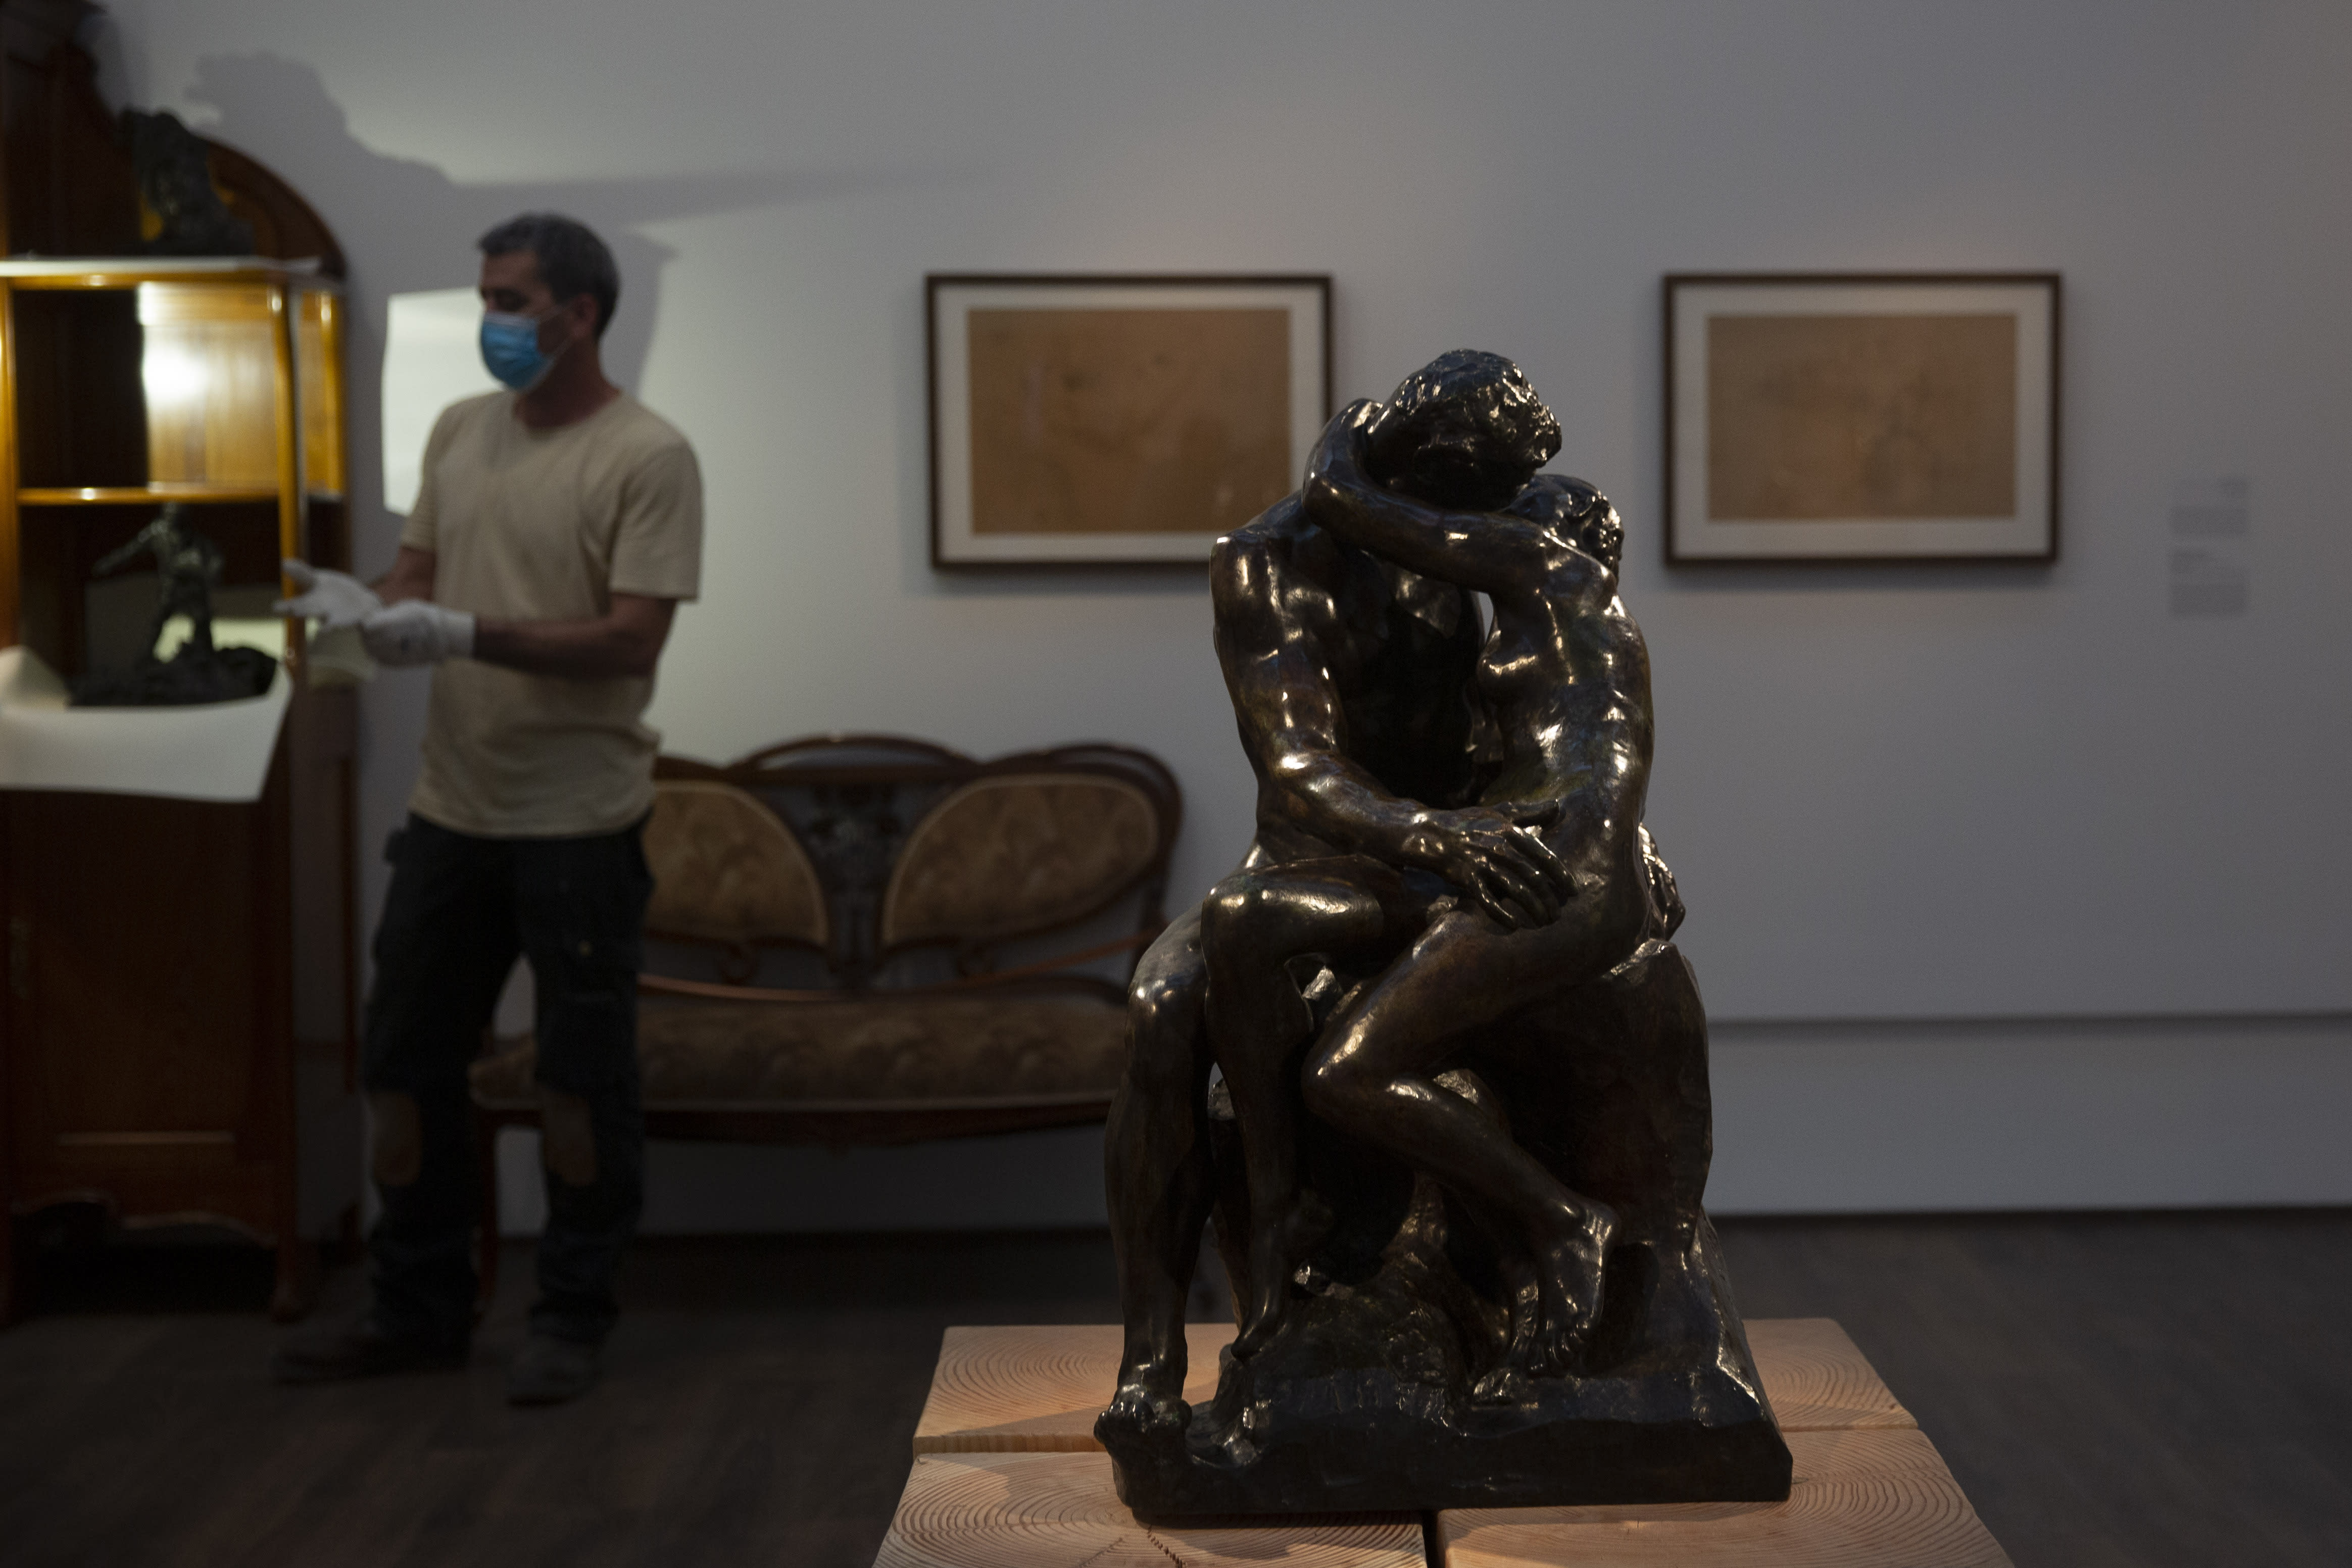 """Auguste Rodin's """"The Kiss,"""" is on display in a gallery of the Israel Museum after five months in storage during closures due to the coronavirus pandemic, in Jerusalem, Tuesday, Aug. 11, 2020. The Israel Museum, the country's largest cultural institution, is returning the priceless Dead Sea scrolls and other treasured artworks to its galleries ahead of this week's reopening to the public. (AP Photo/Maya Alleruzzo)"""